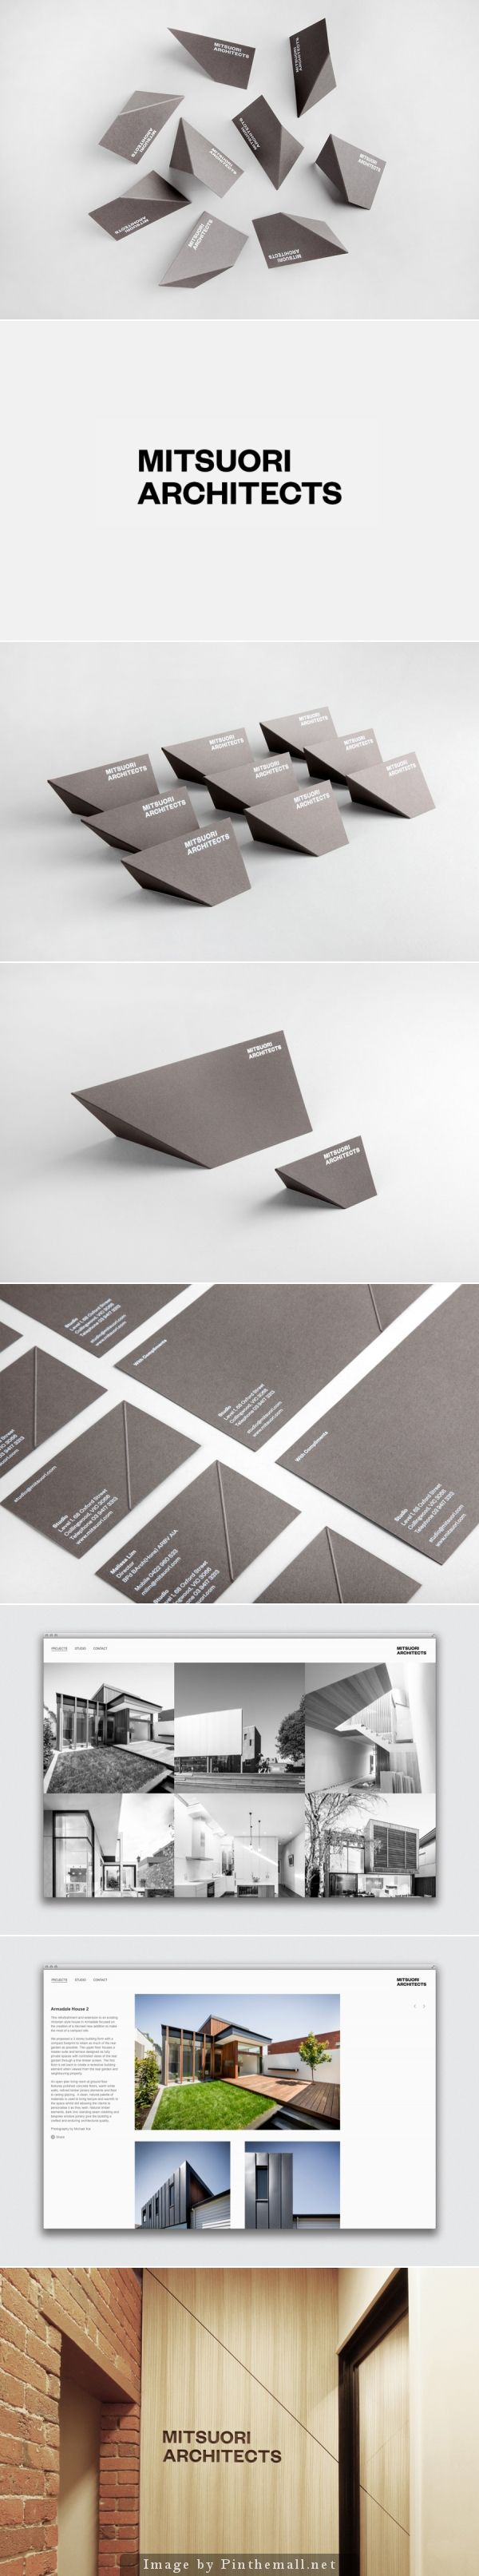 Mitsuori Architects #business #cards designed by Hunt &Co.